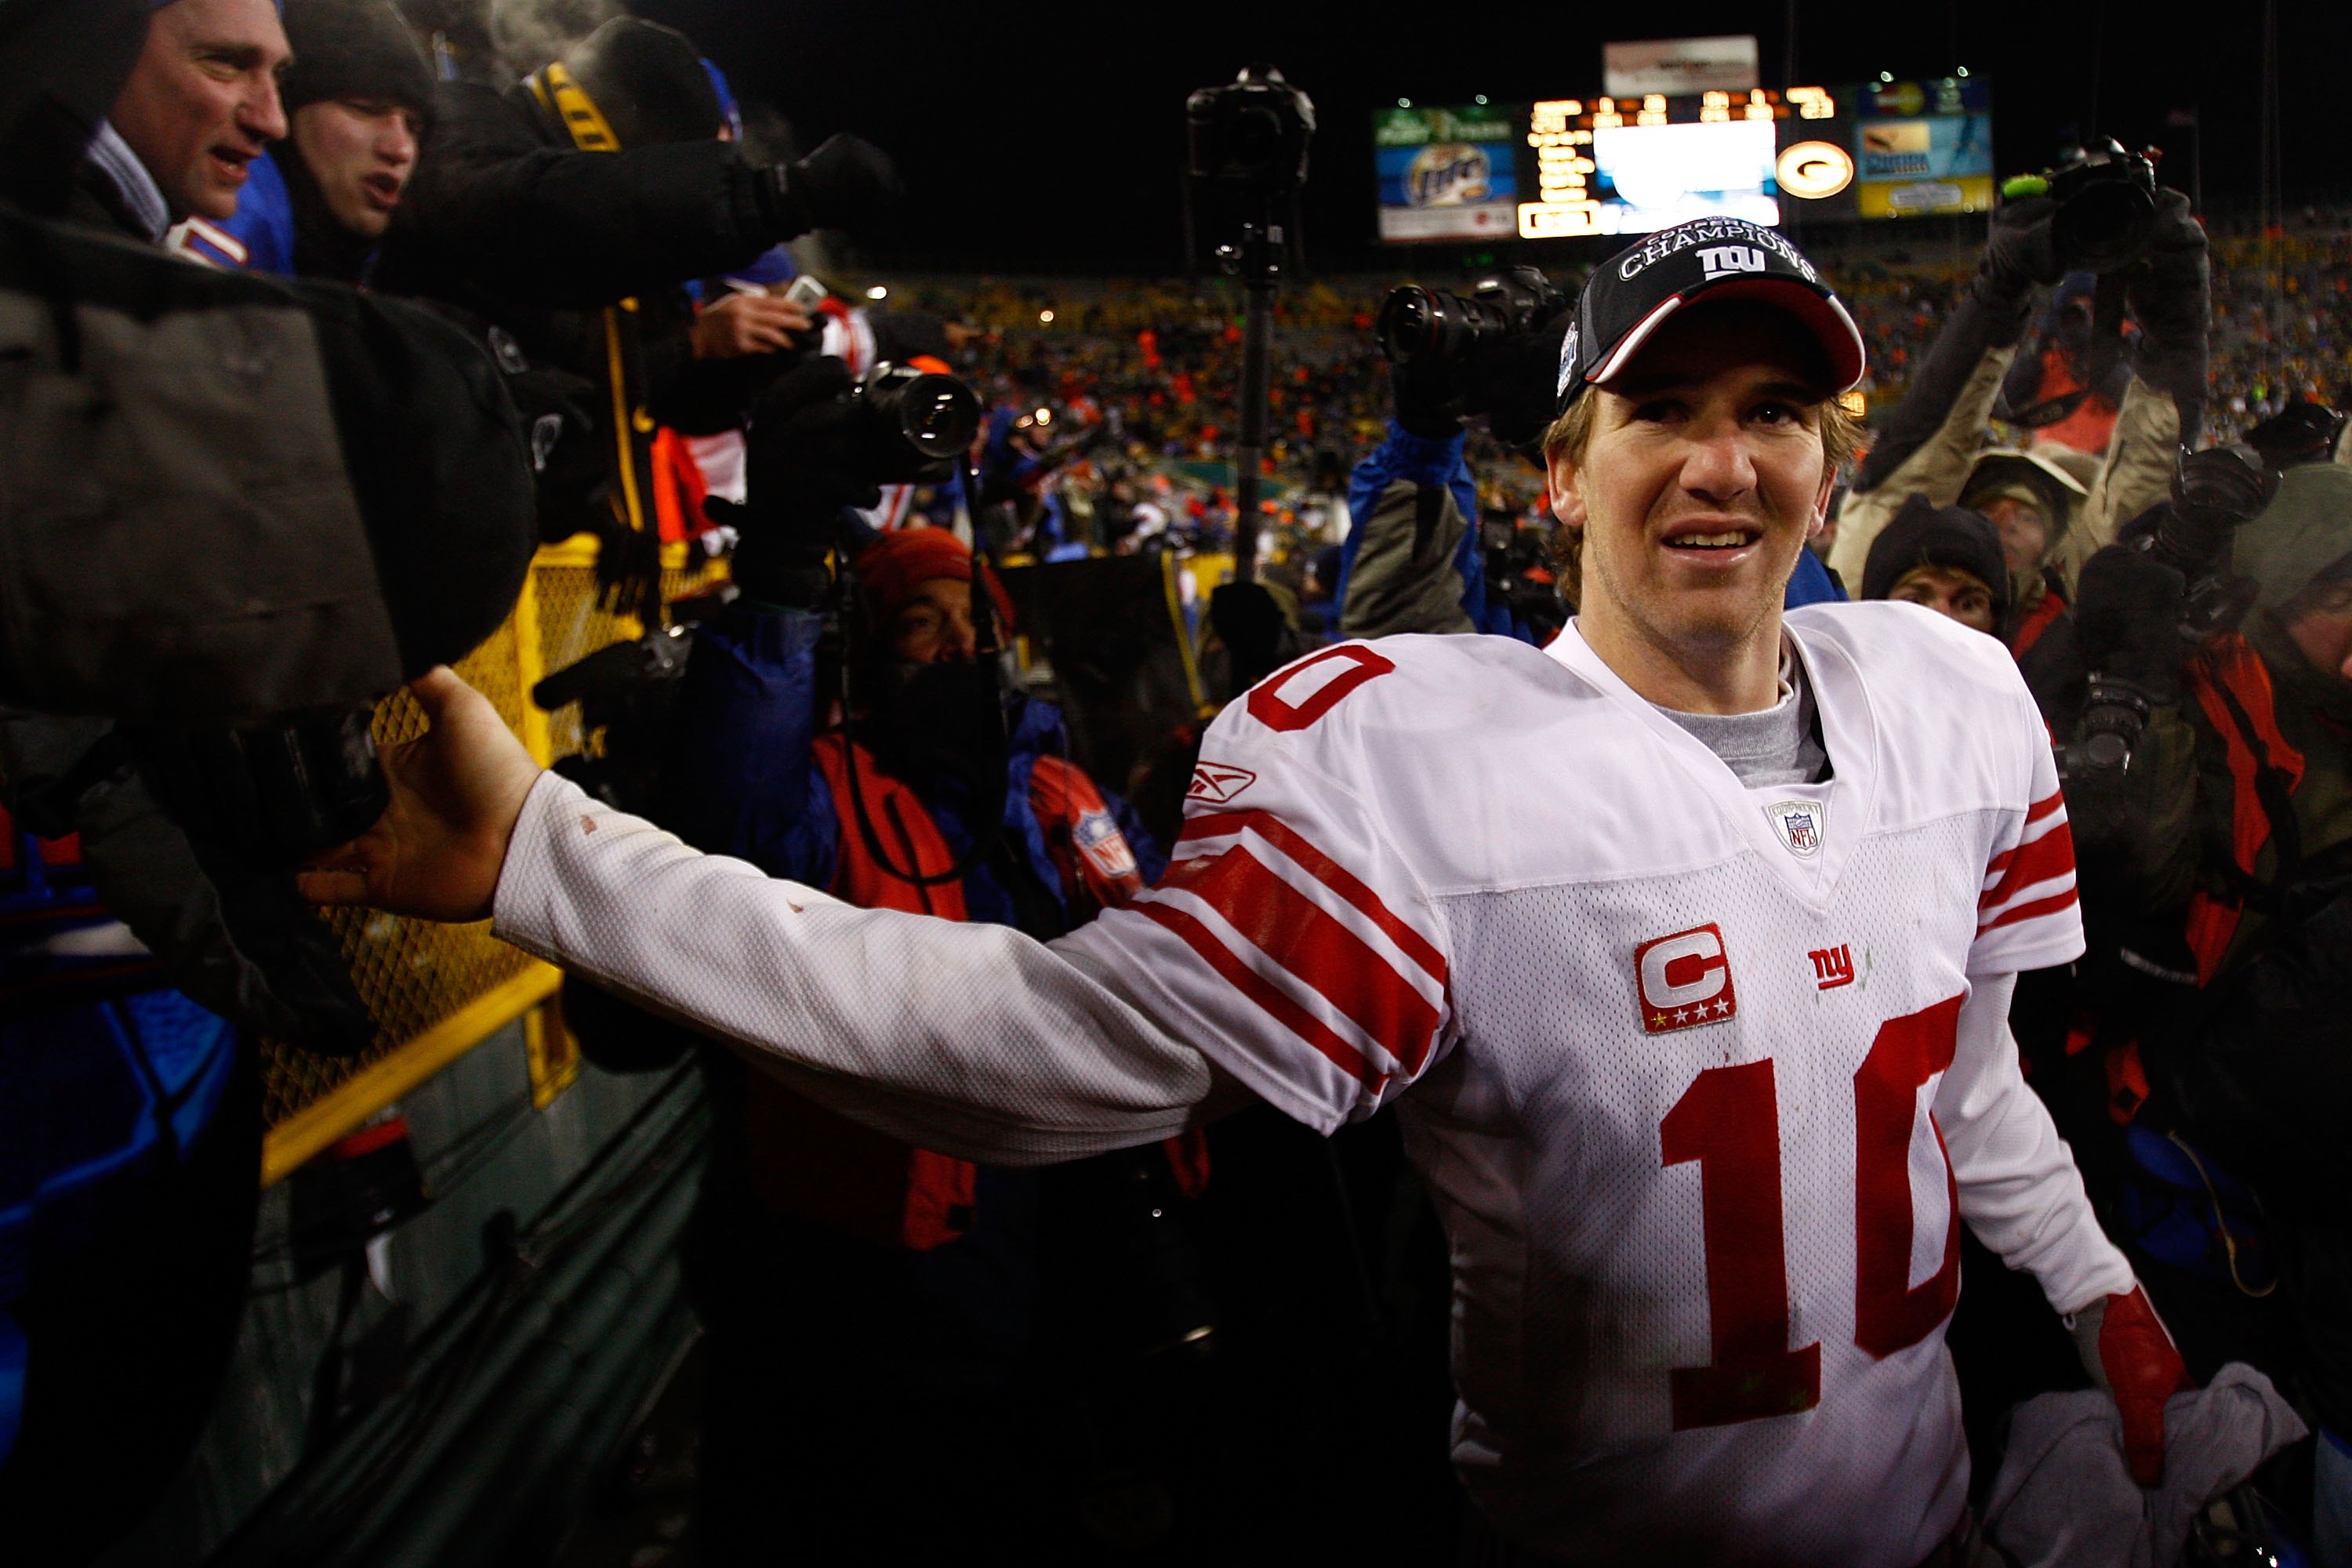 GREEN BAY, WI - JANUARY 20:  Quarterback Eli Manning #10 of the New York Giants celebrates with fans after winning the NFC championship game against the Green Bay Packers on January 20, 2008 at Lambeau Field in Green Bay, Wisconsin.   The Giants defeated